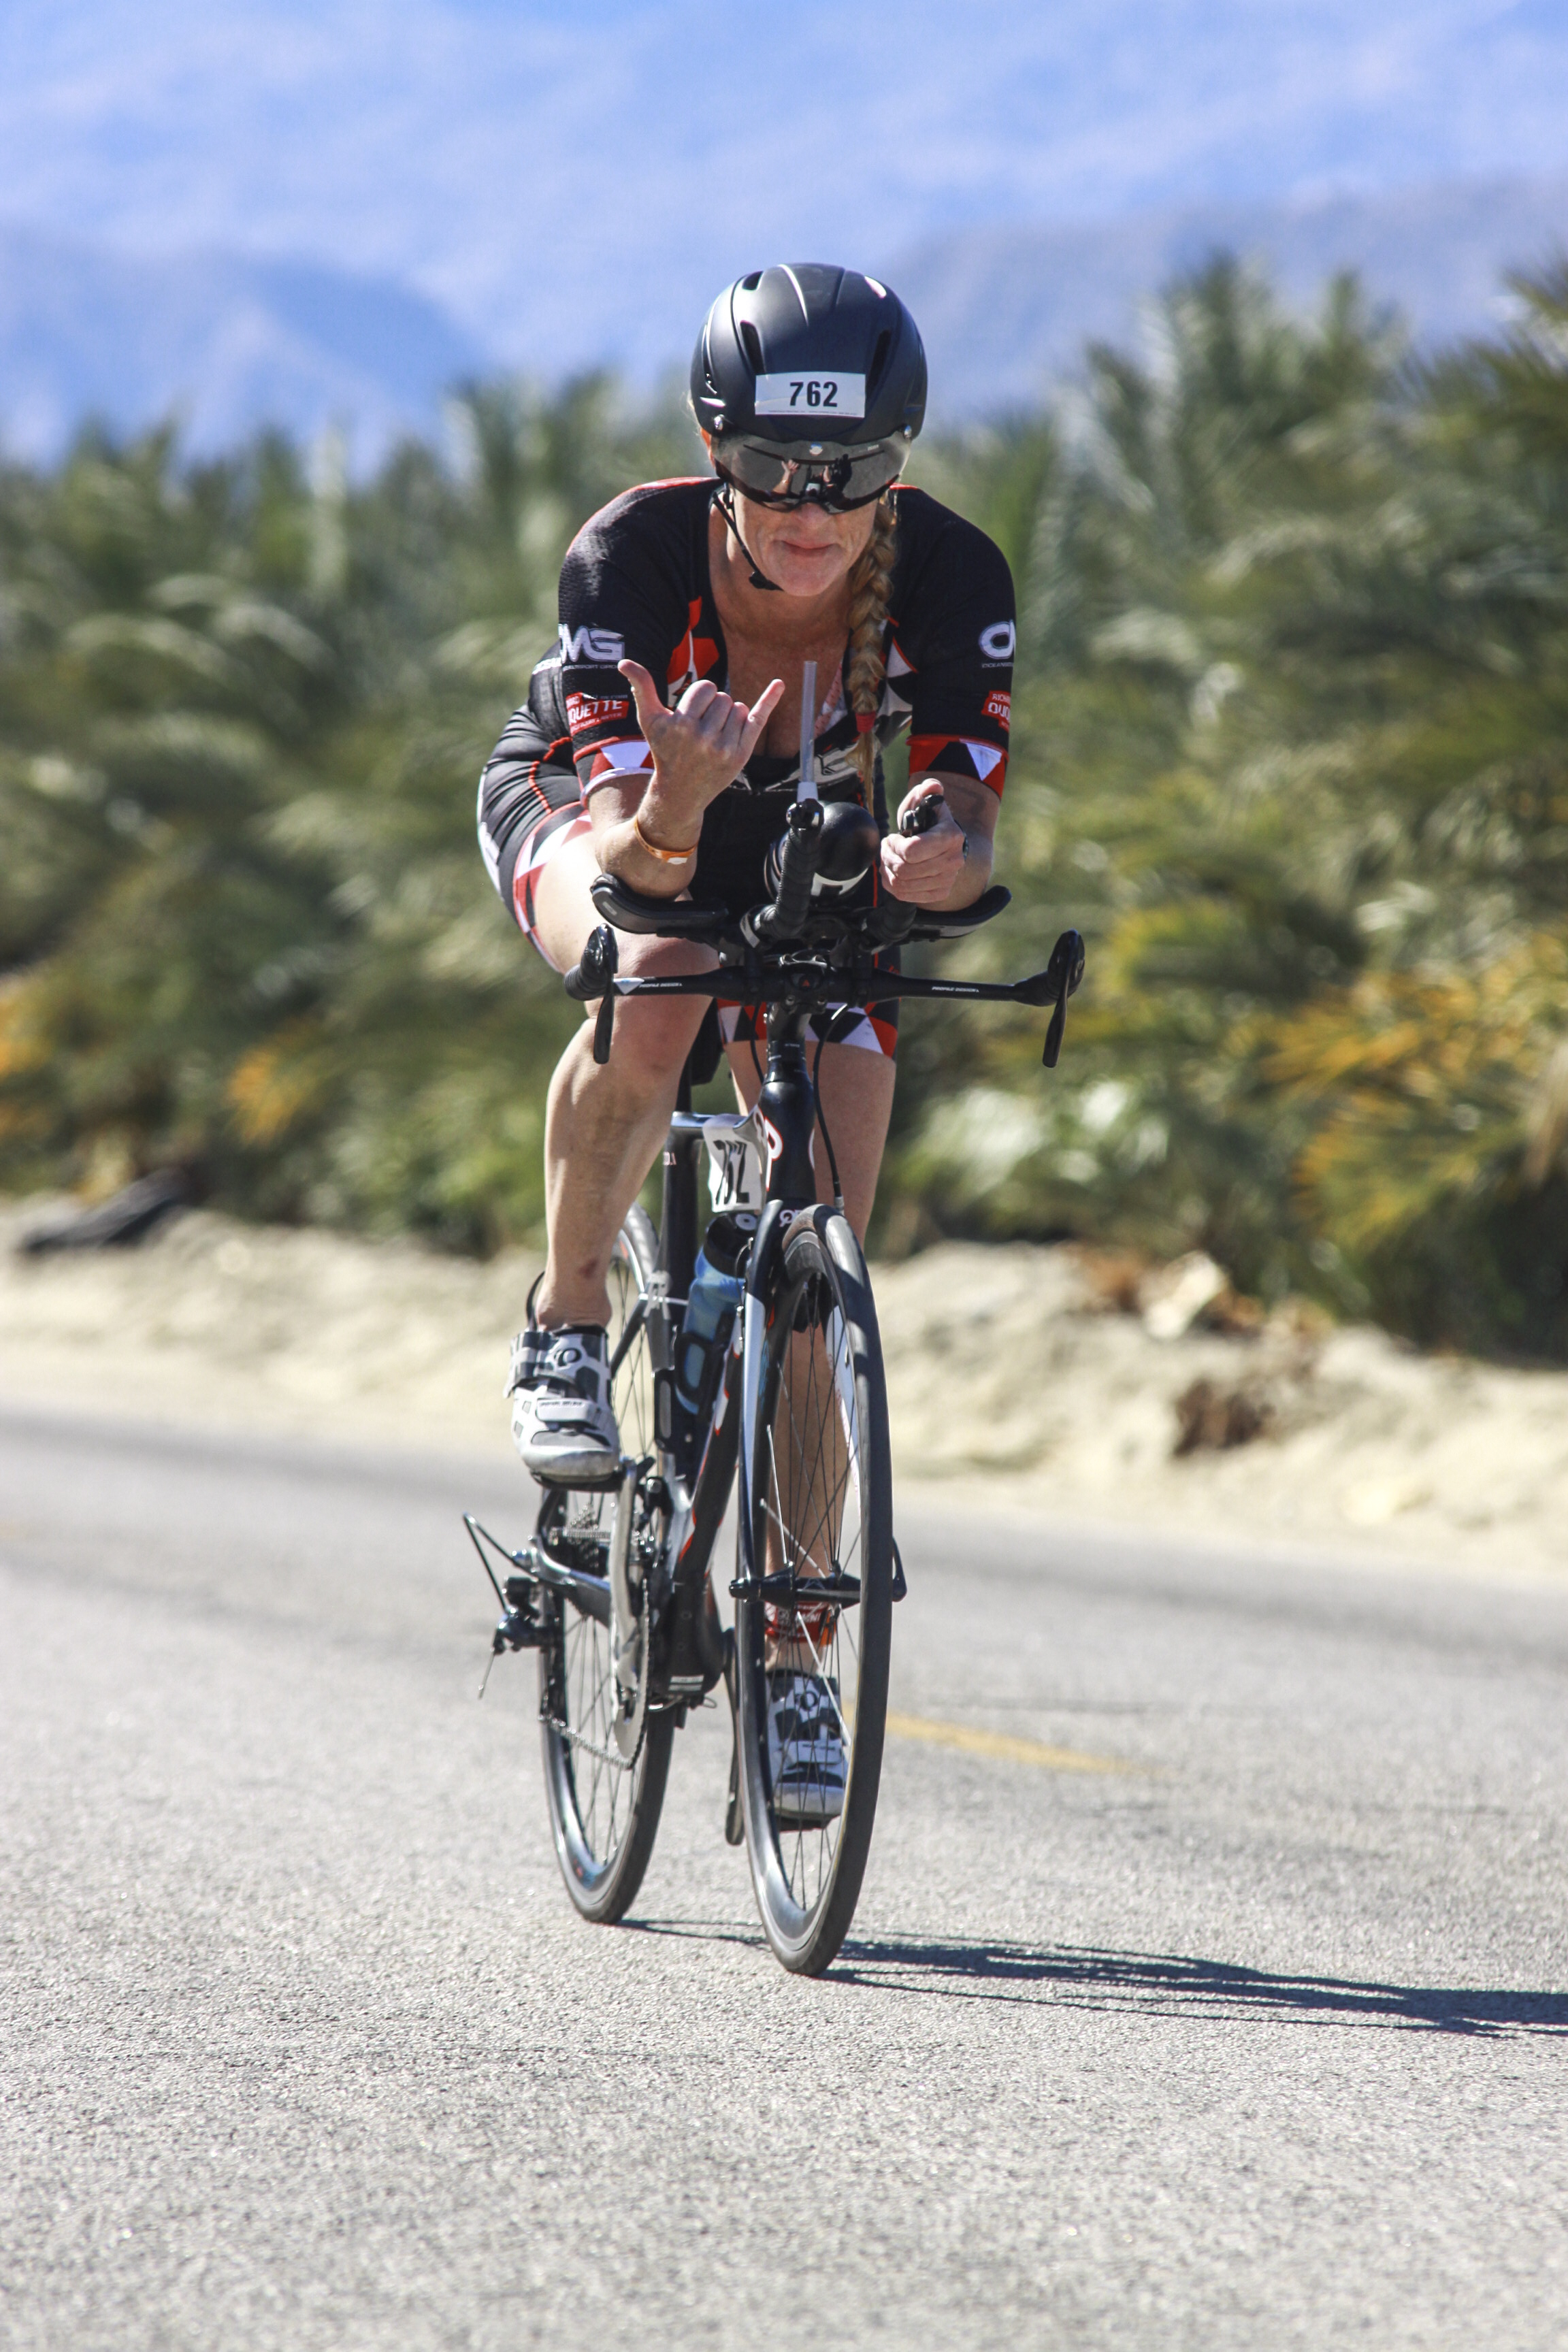 Coach_Terry_Wilson_Pursuit_Of_The_Perfect_Race_Carrie_Turner_Ironman_Hawaii_70.3_3.jpg